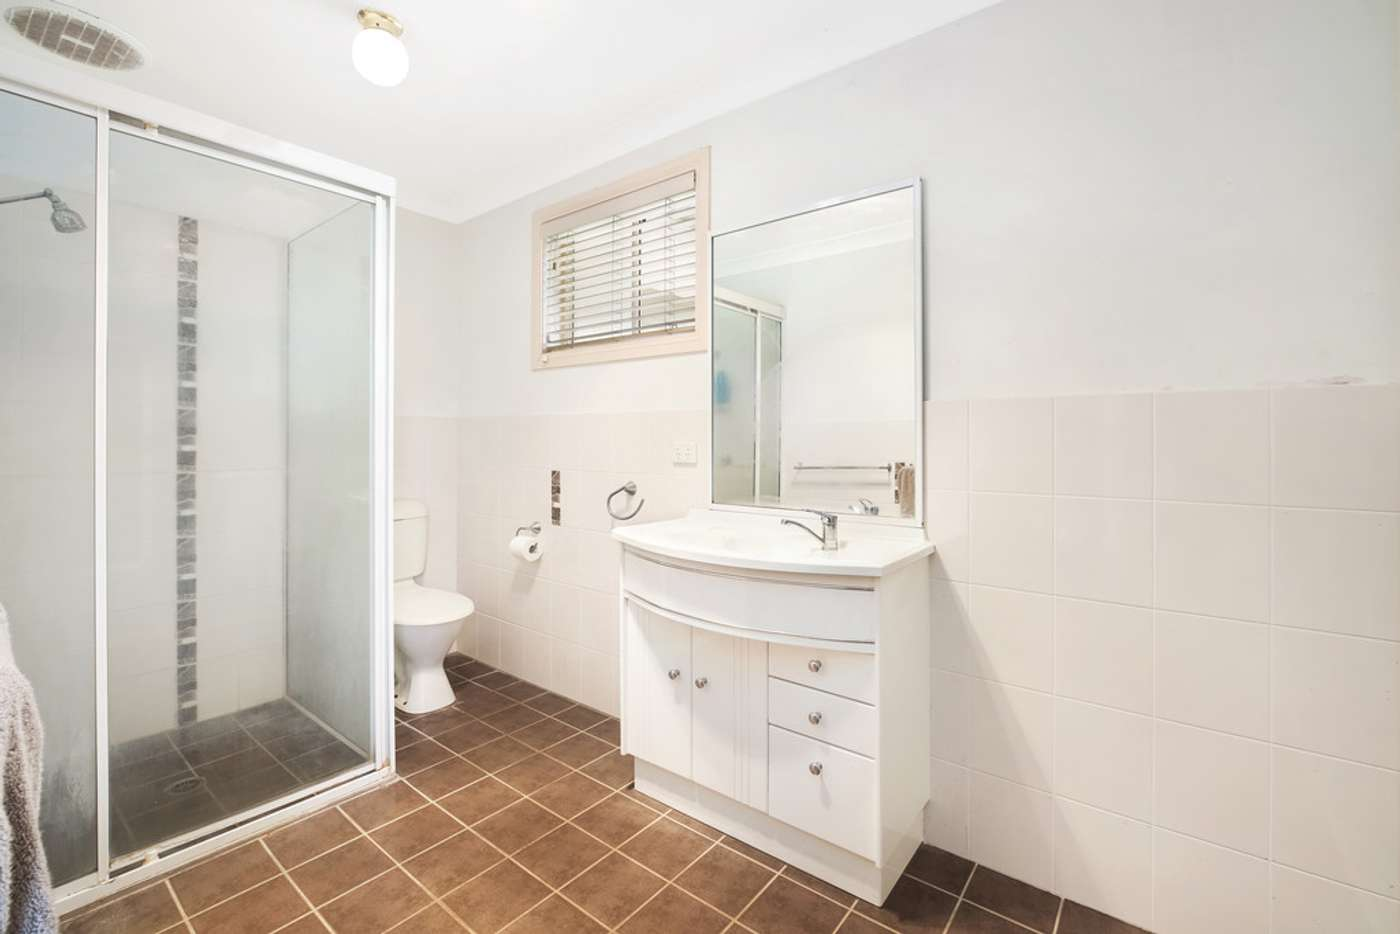 Sixth view of Homely house listing, 82 Colonial Circuit, Wauchope NSW 2446